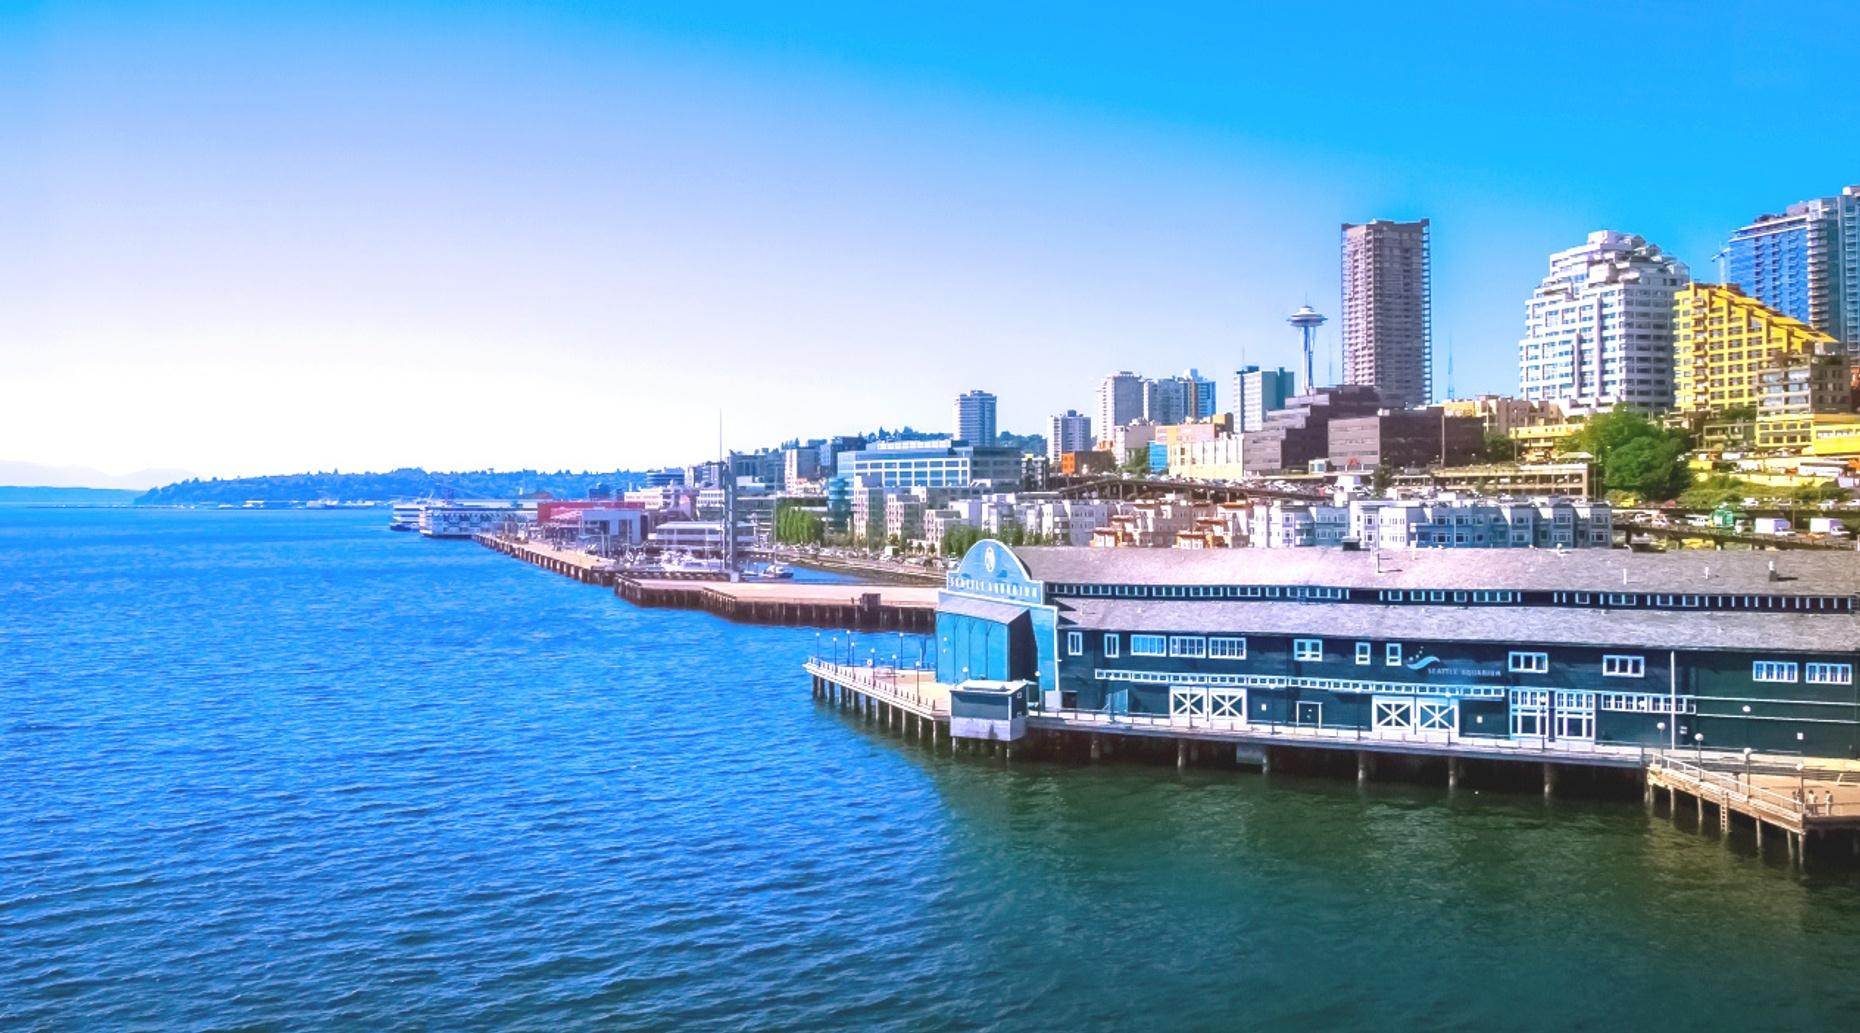 Waterfront & Pioneer Square 5K Running Tour in Seattle